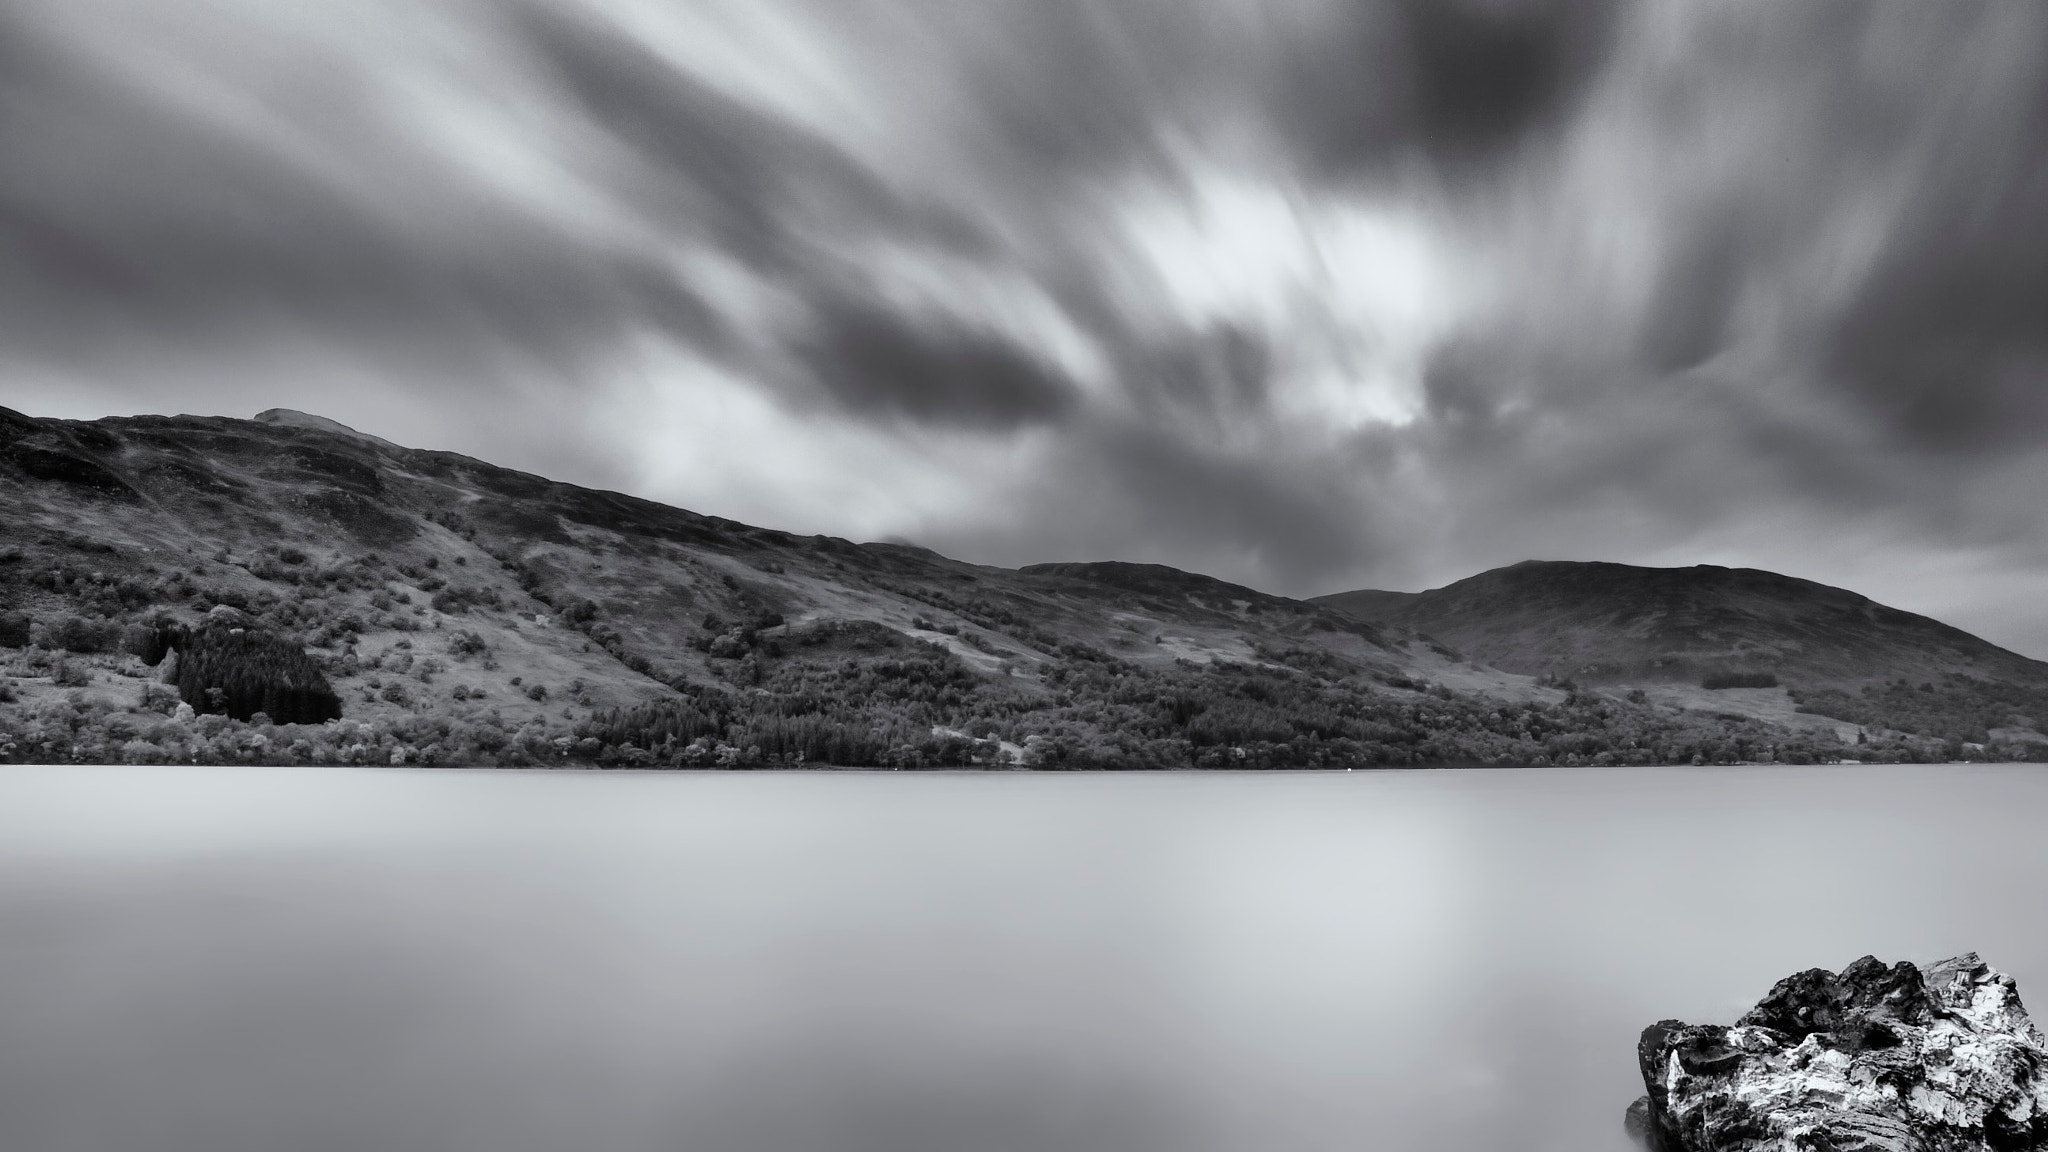 Photograph Loch Earn; Sunrise by Duncan Green on 500px